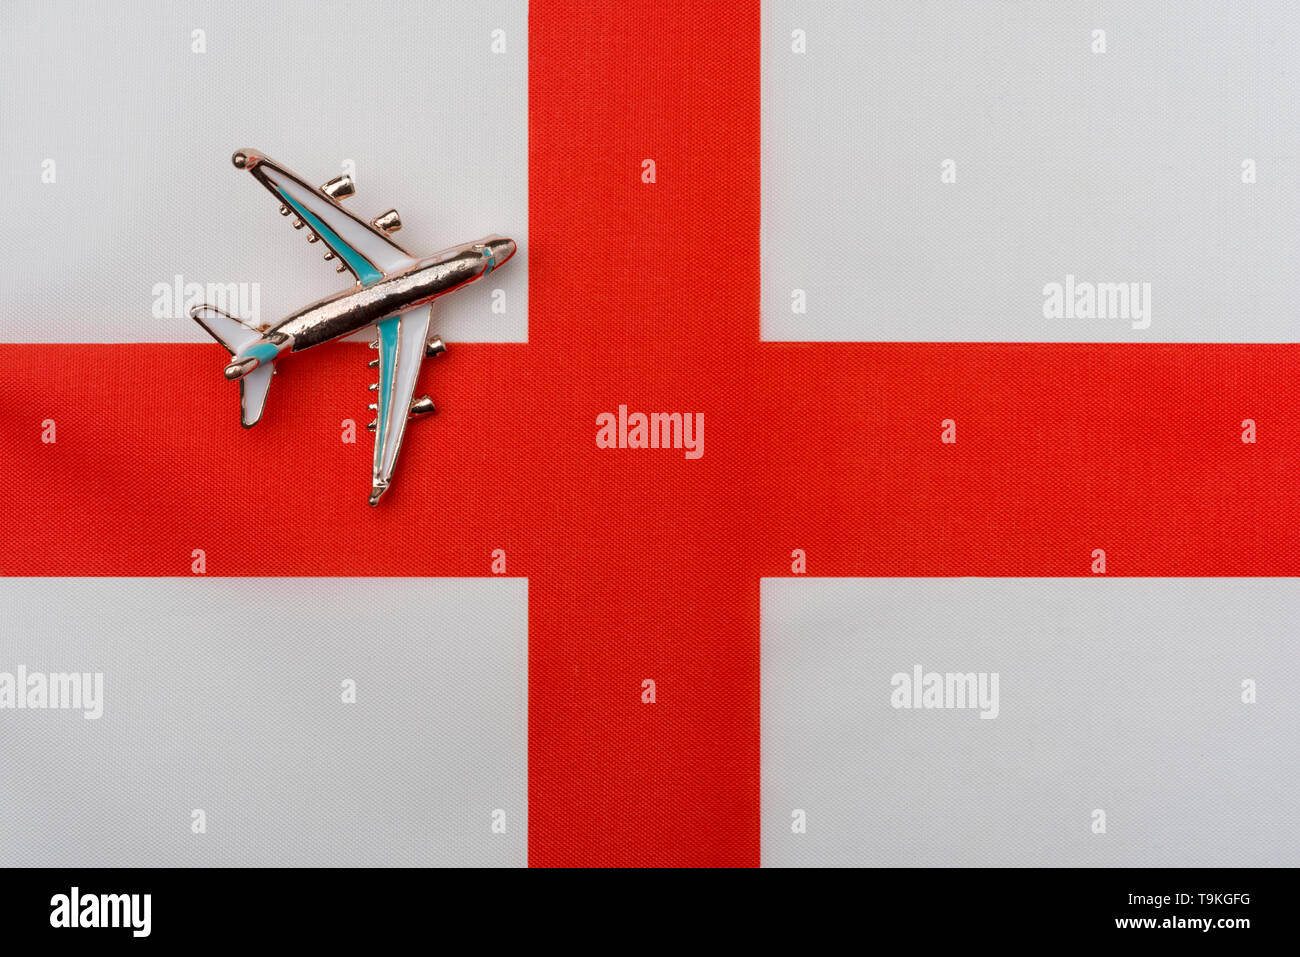 Plane over the flag of the English Kingdom travel concept. Toy plane on the flag in the background. - Stock Image